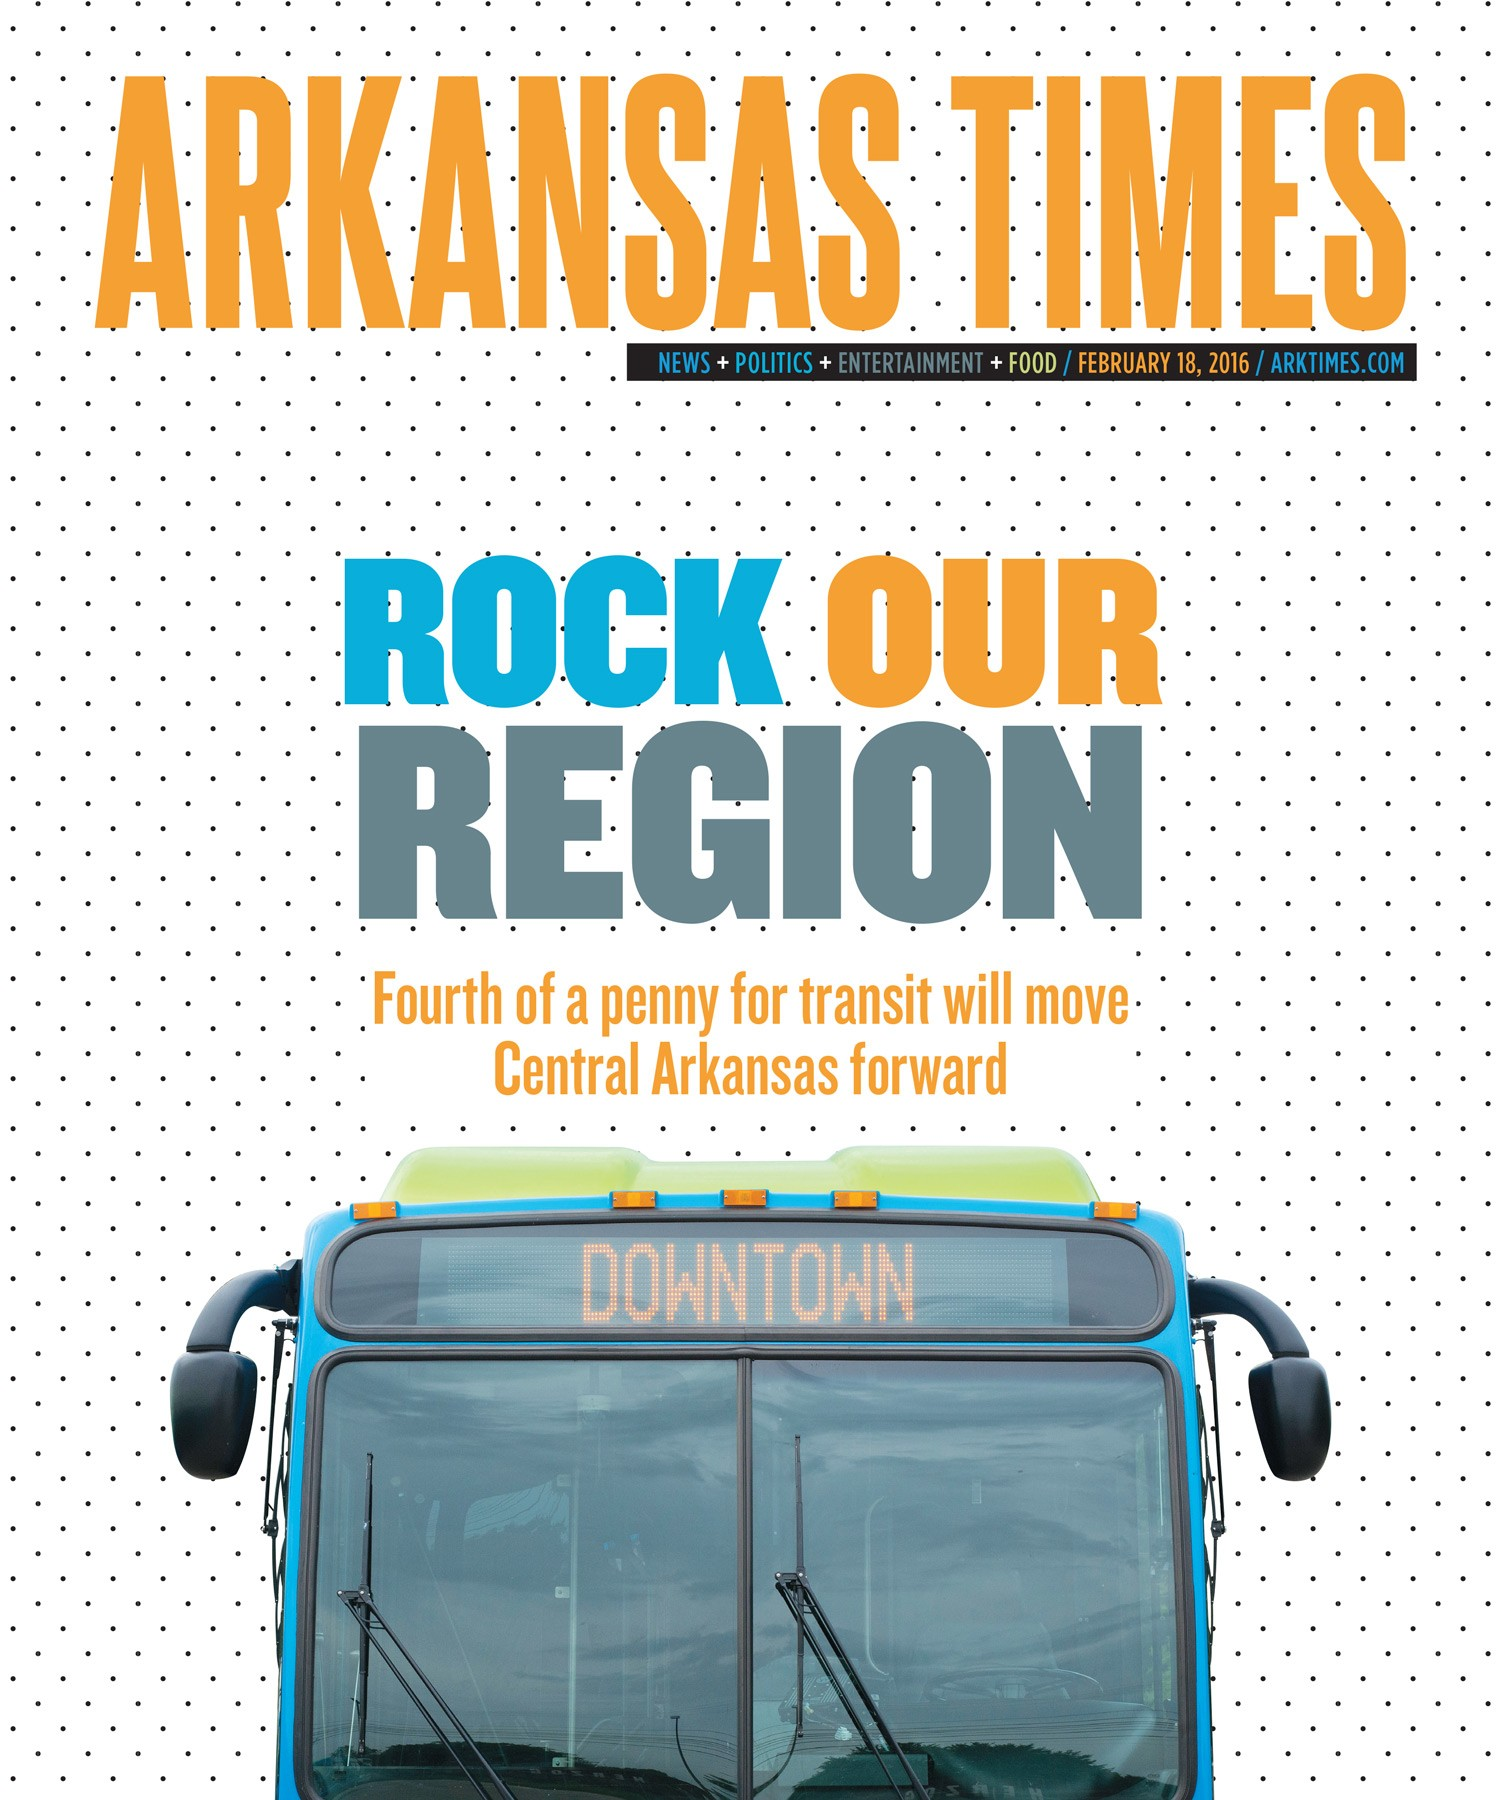 Rock our region